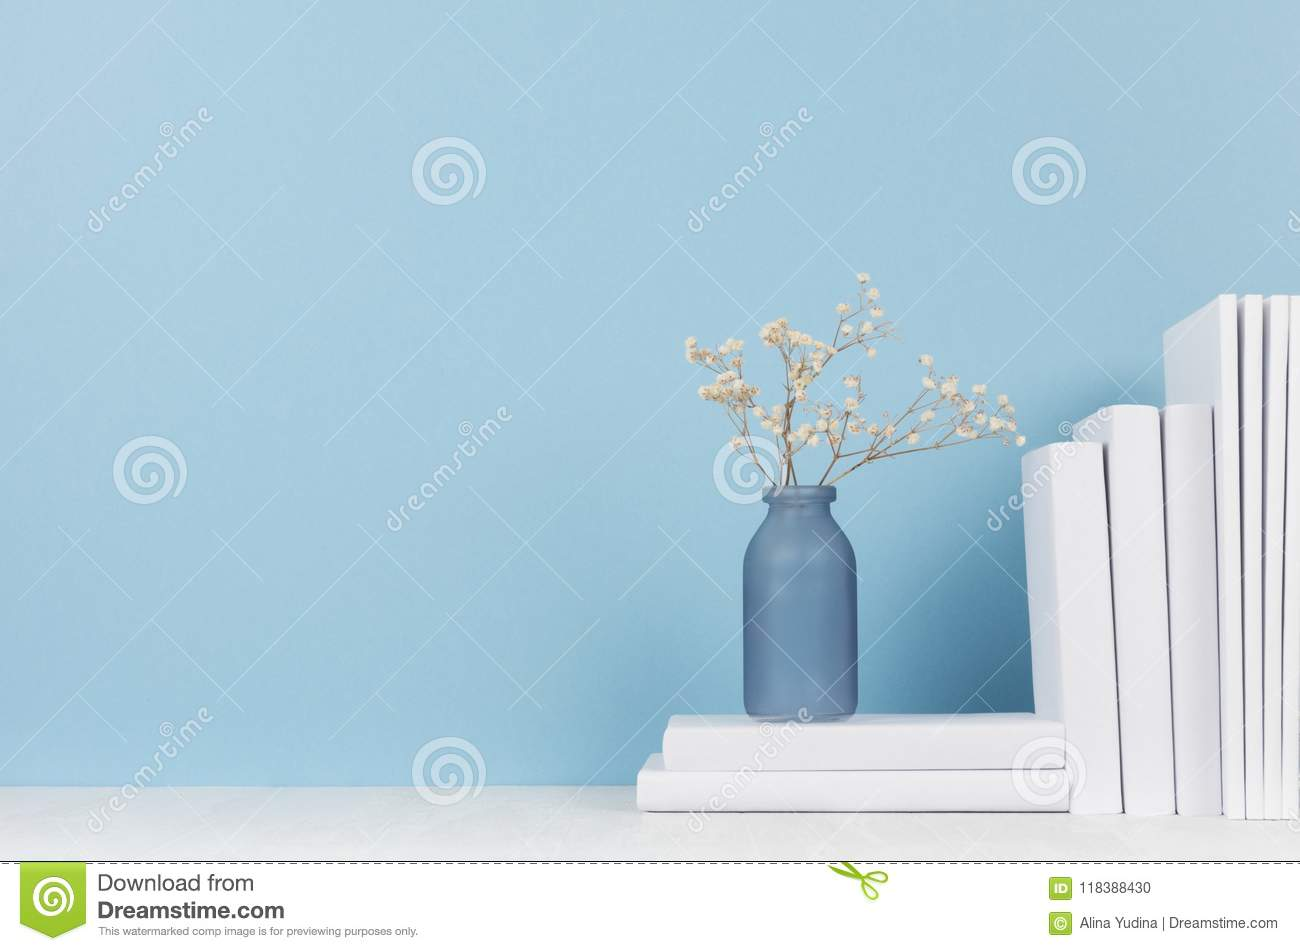 Modern style workplace - white stationery and glass vase with dry flowers on soft blue background and light desk.